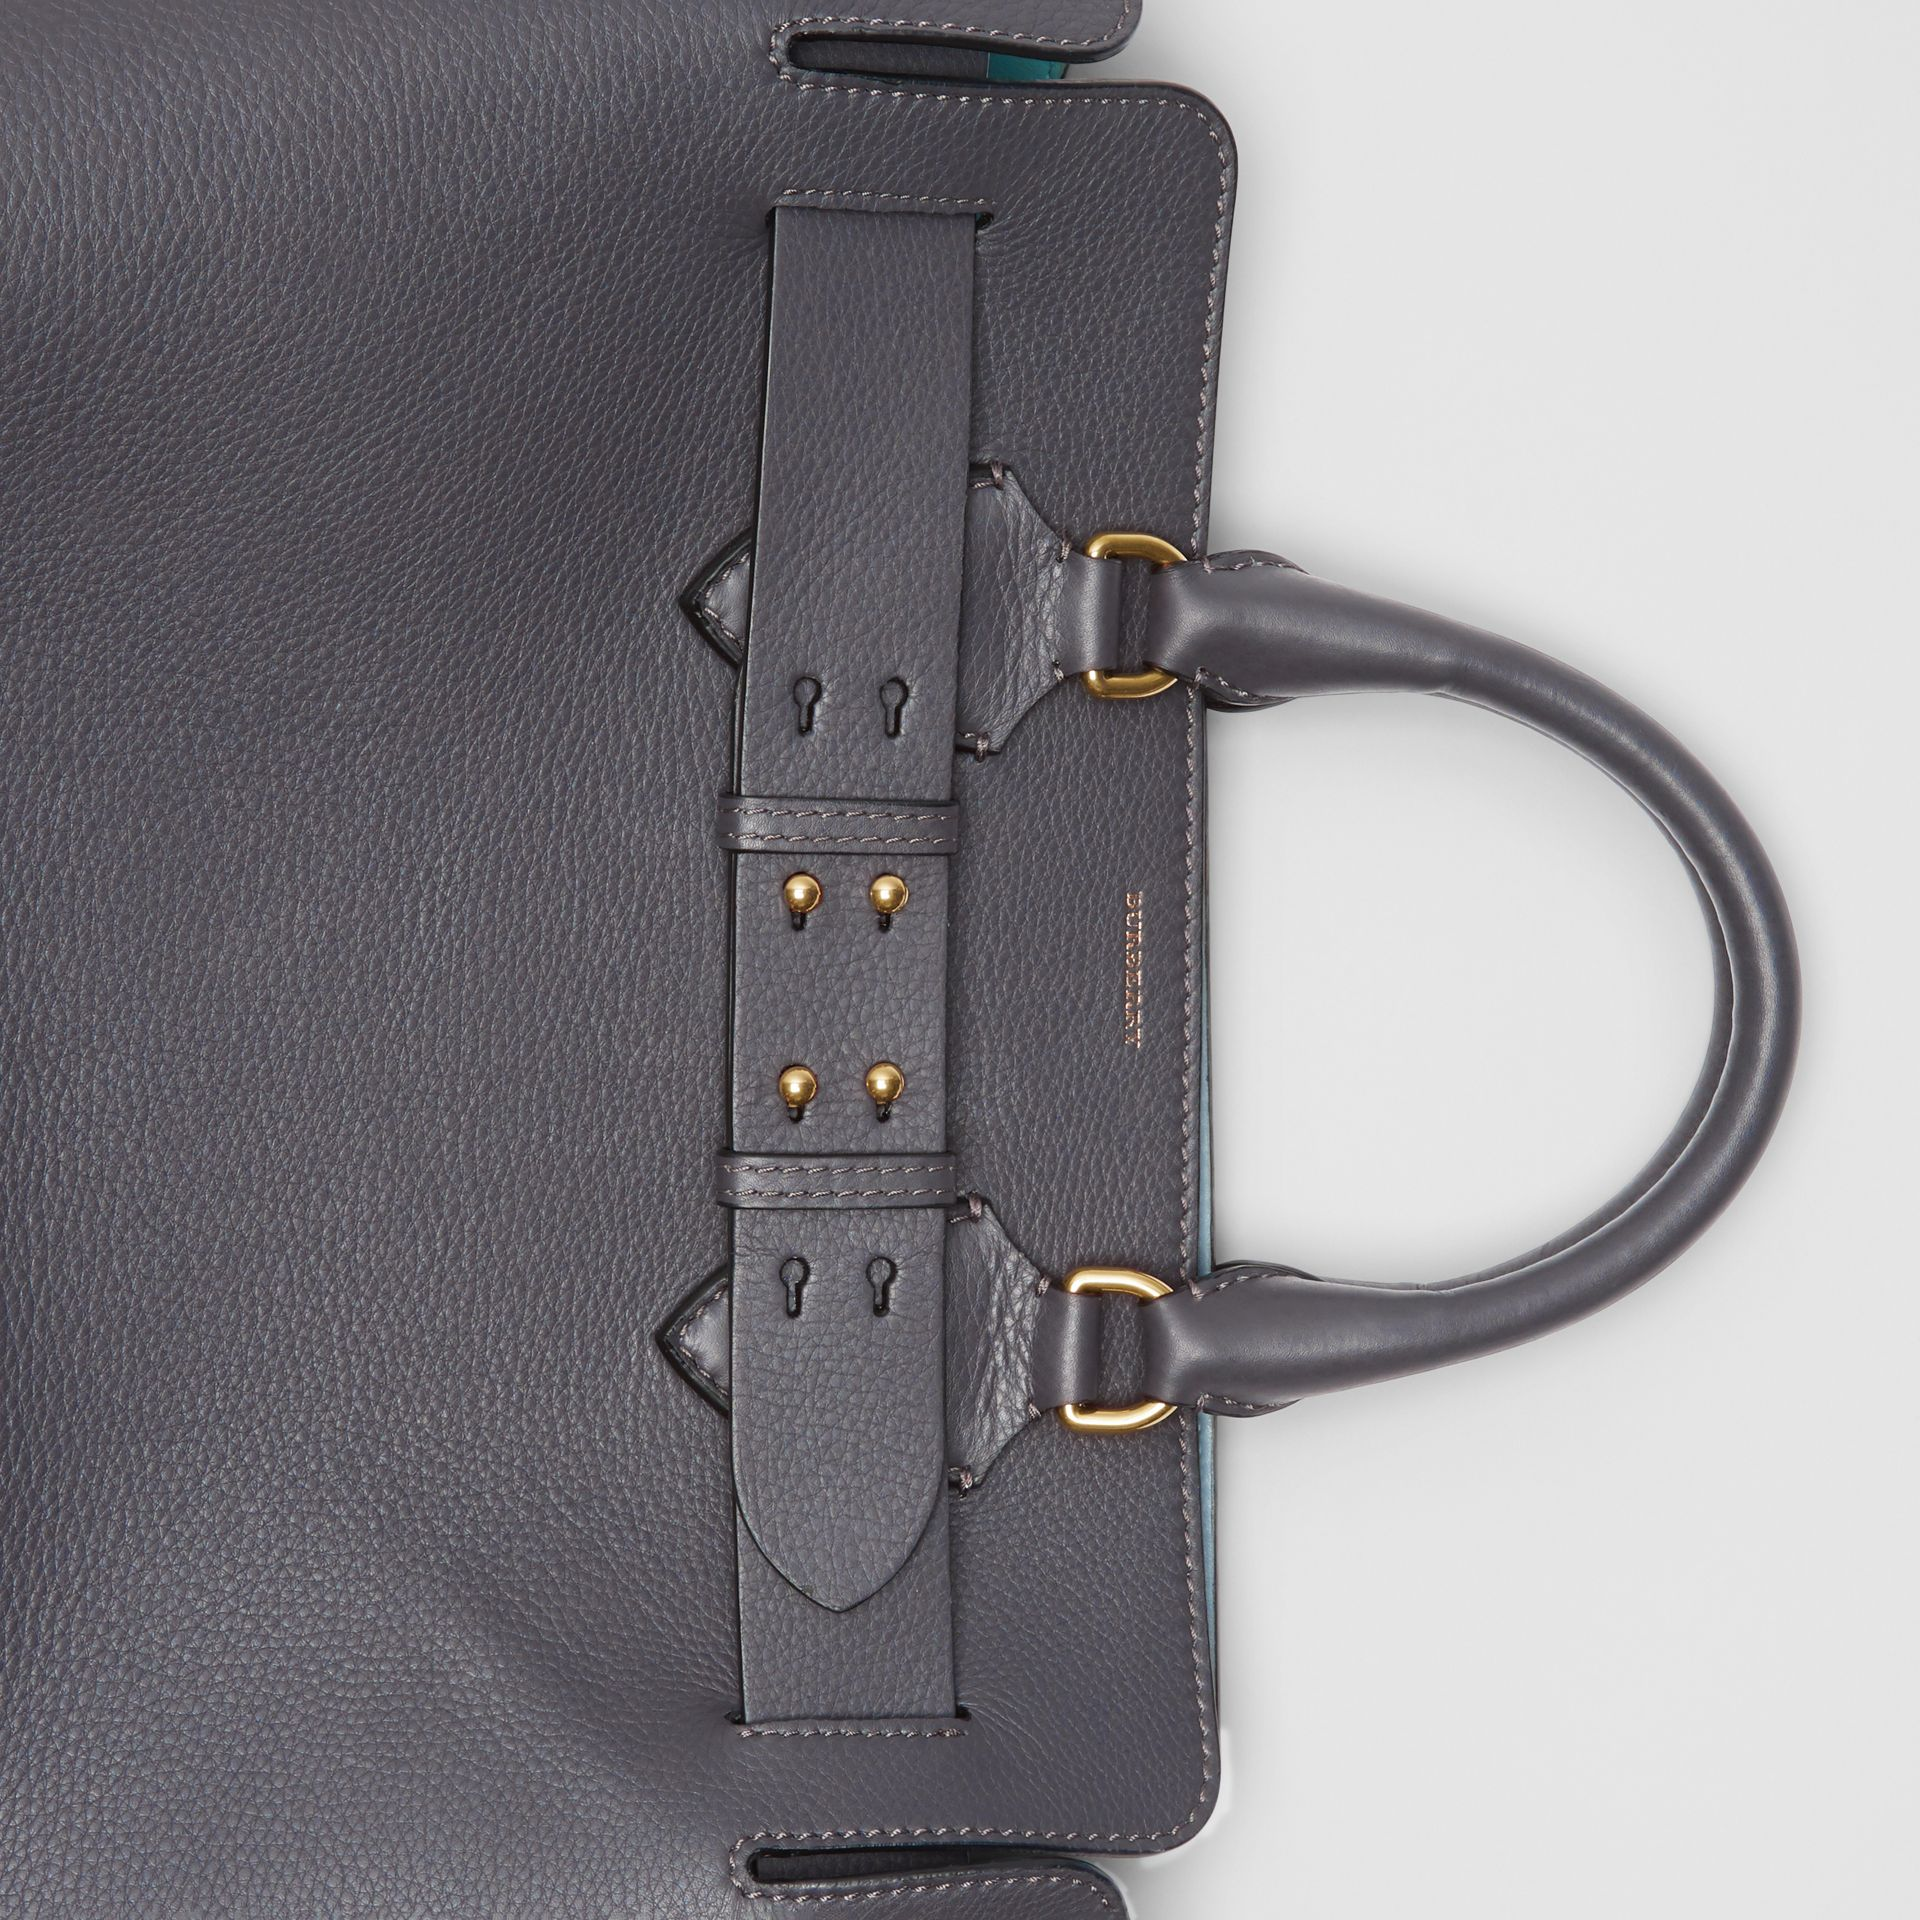 Sac The Belt moyen en cuir (Gris Anthracite) - Femme | Burberry - photo de la galerie 1